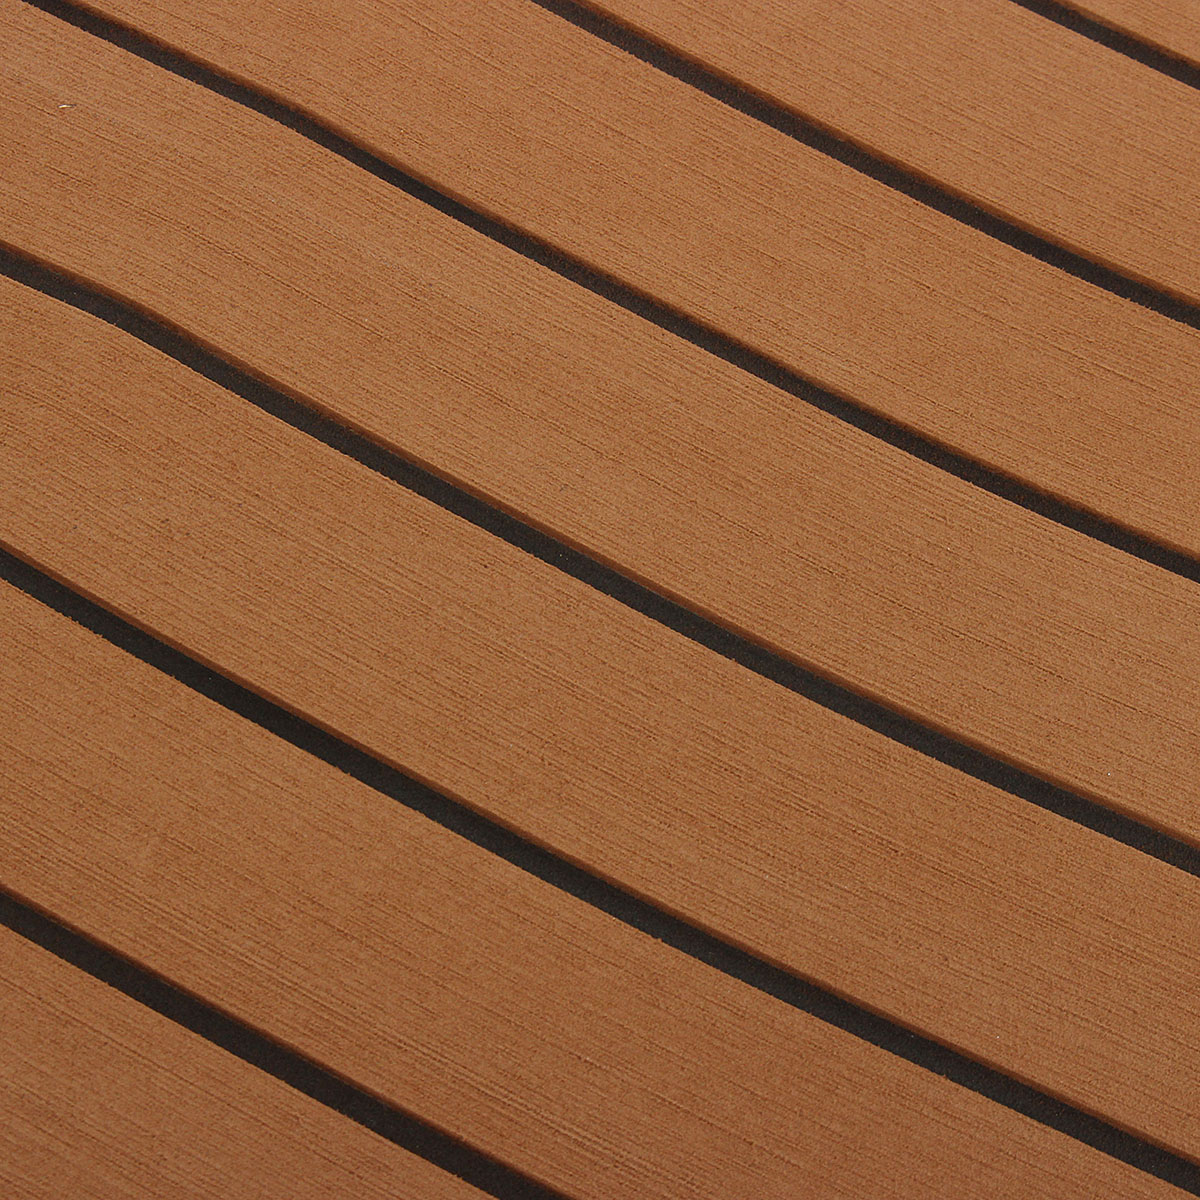 2400x1200x6mm EVA Foam Brown Faux Teak Boat Flooring Decking Sheet Pad